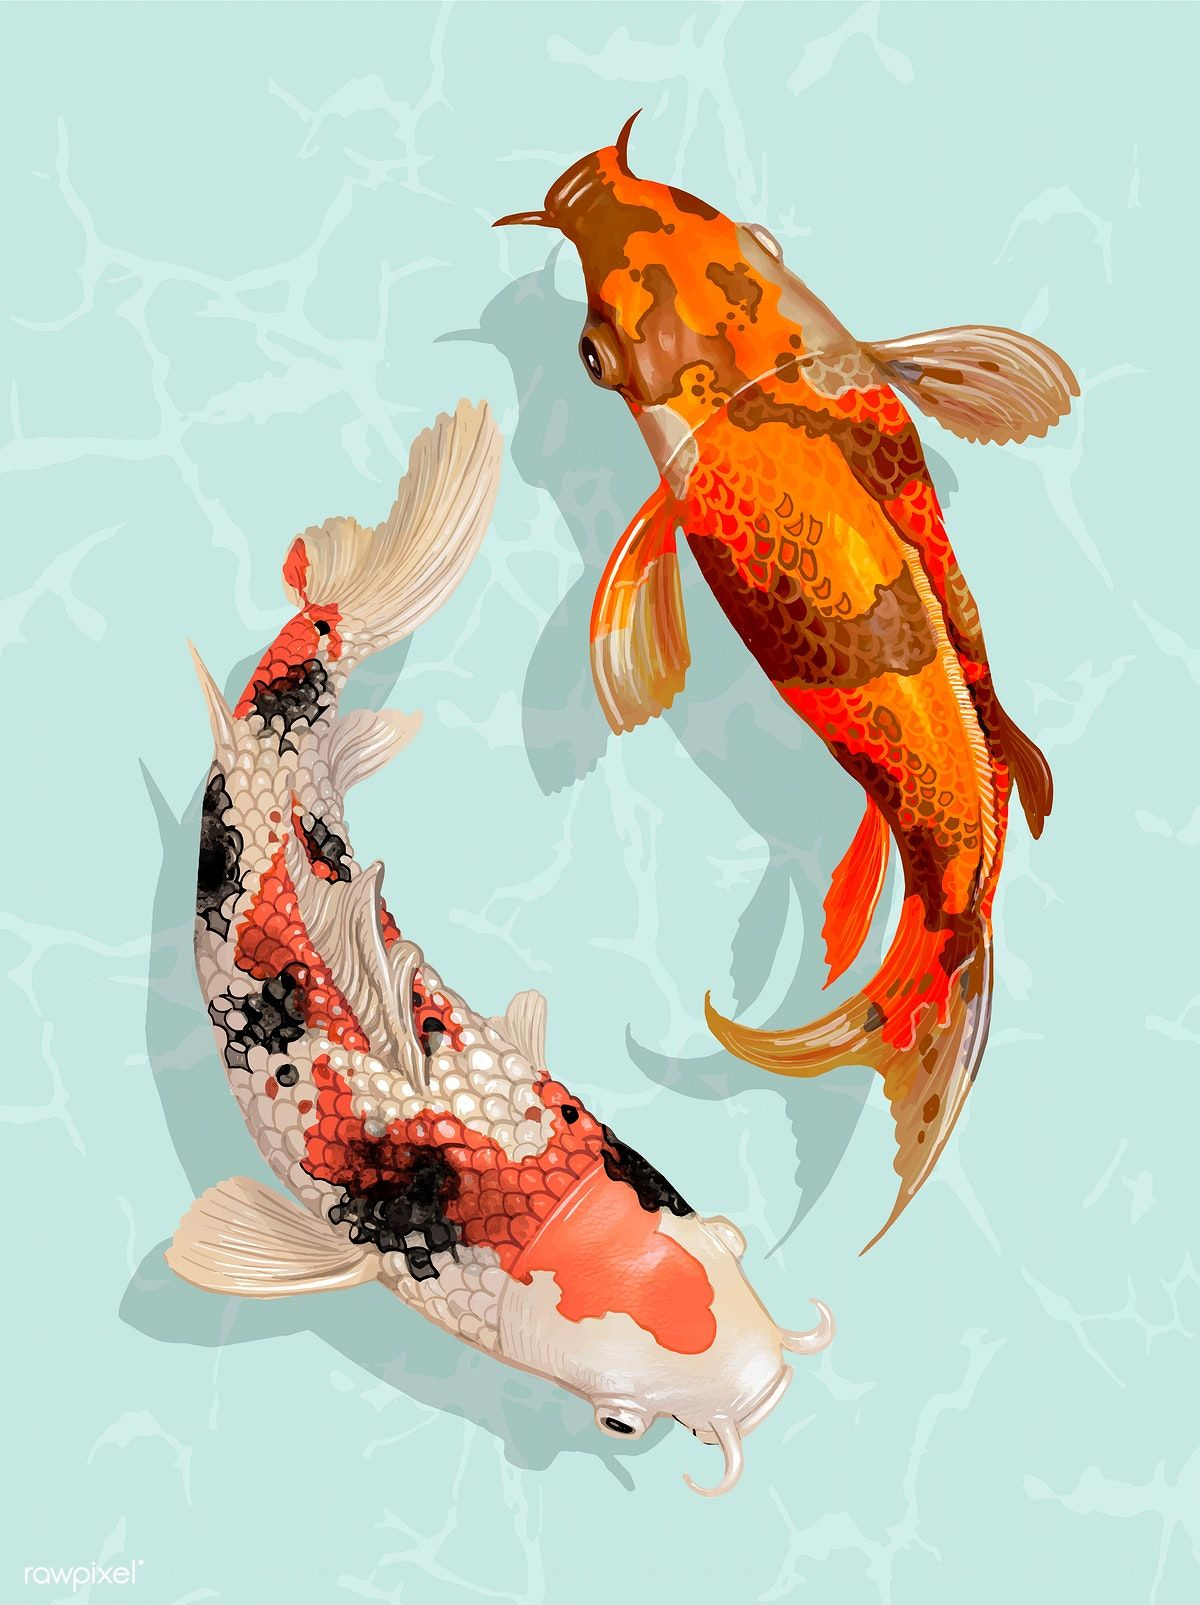 Two Japanese Koi fish swimming | free image by rawpixel.com